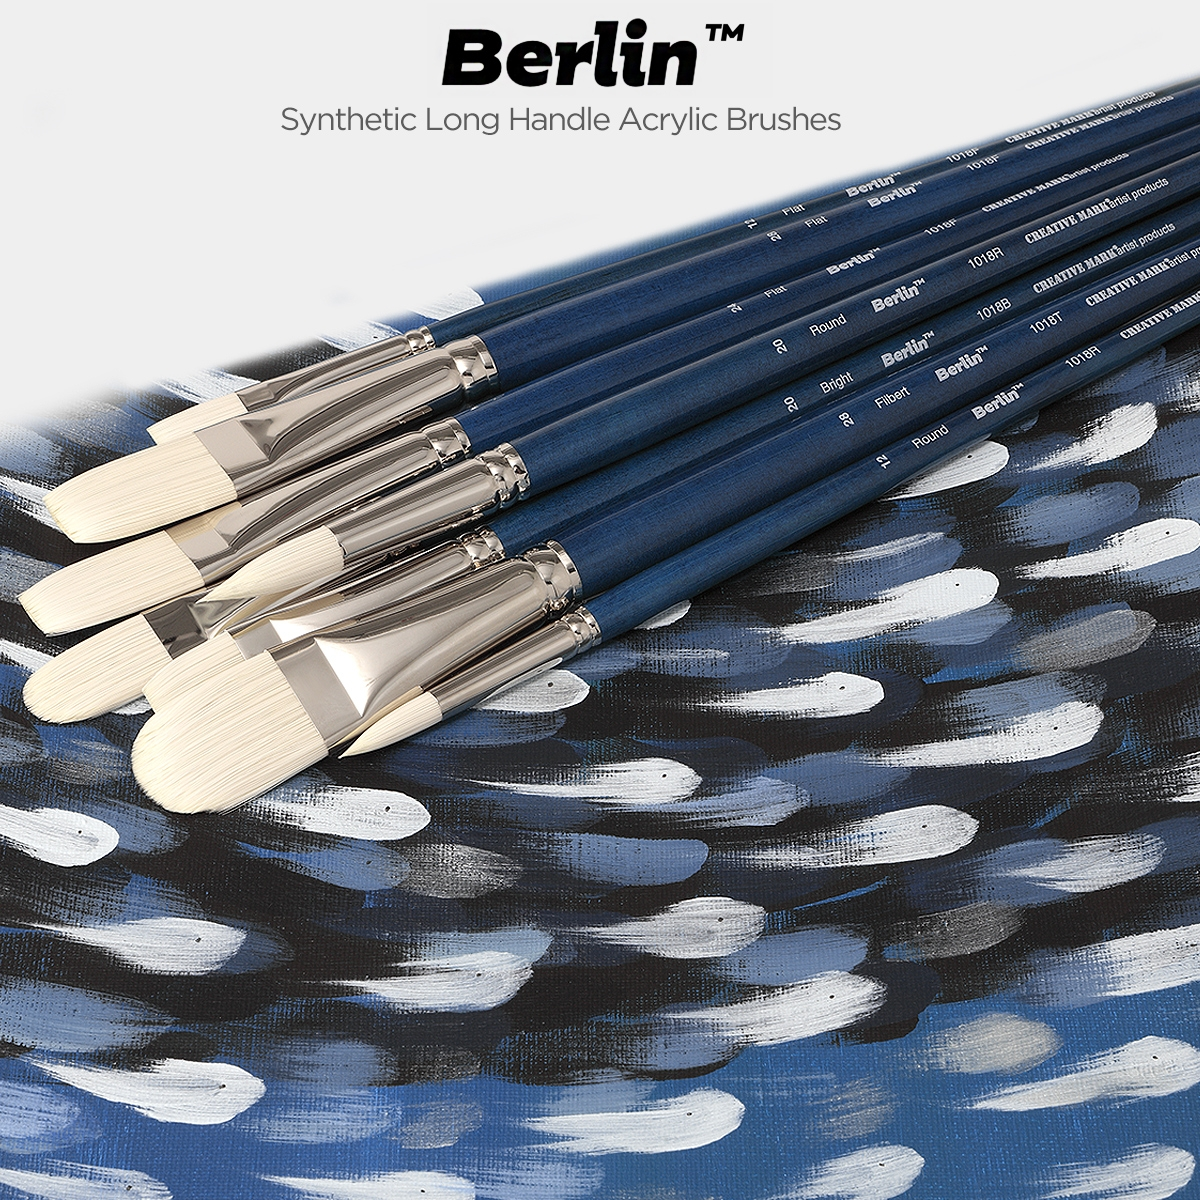 Berlin Synthetic Long Handle Acrylic Brushes